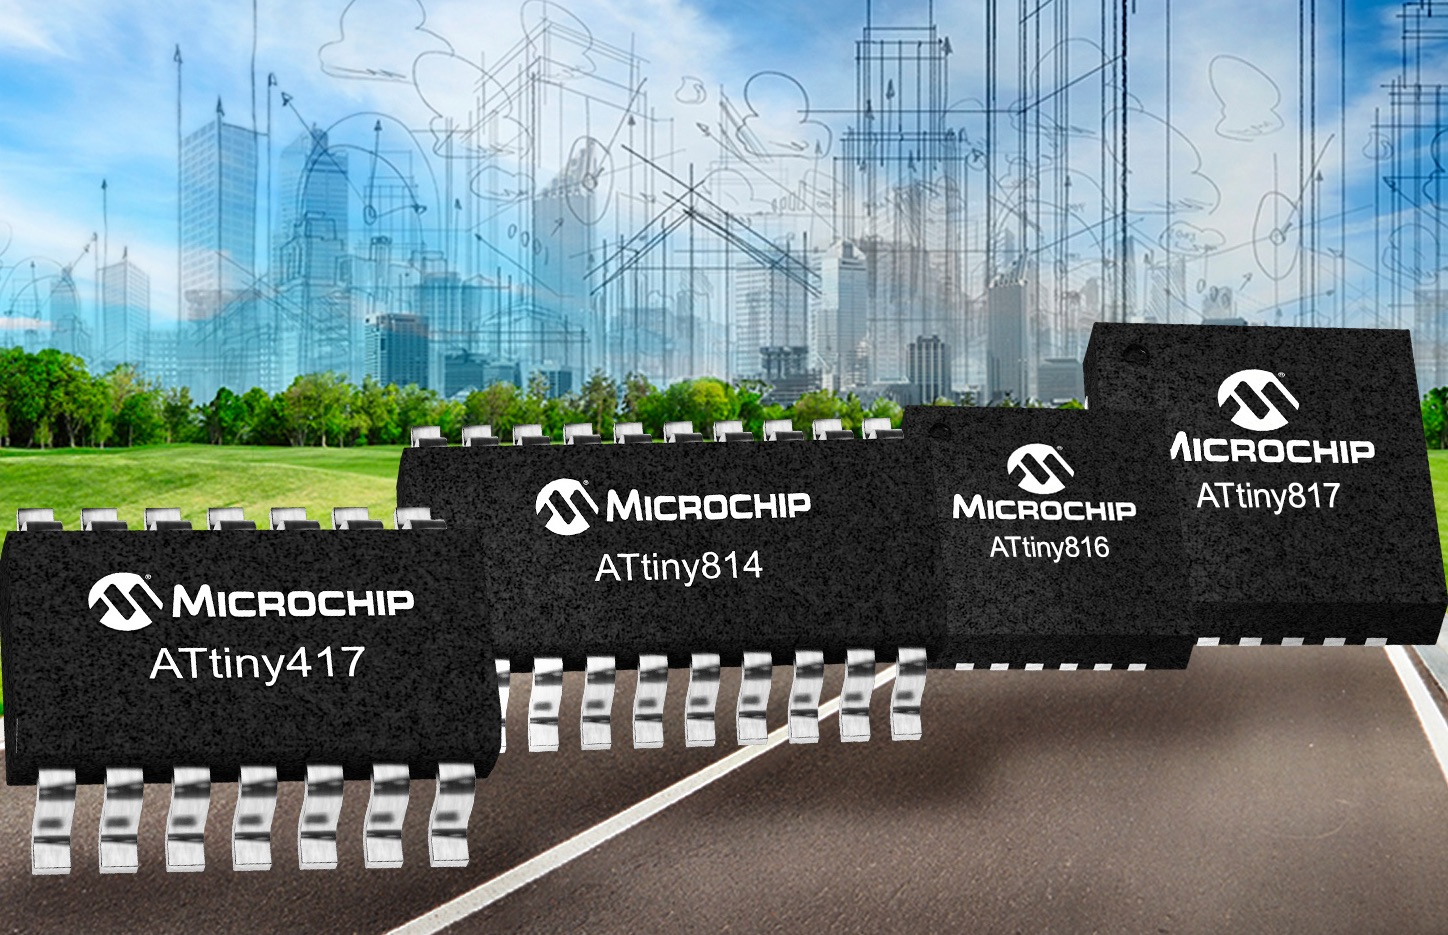 Electronica Microchip unites PIC and AVR with 8bit tinyAVR MCUs